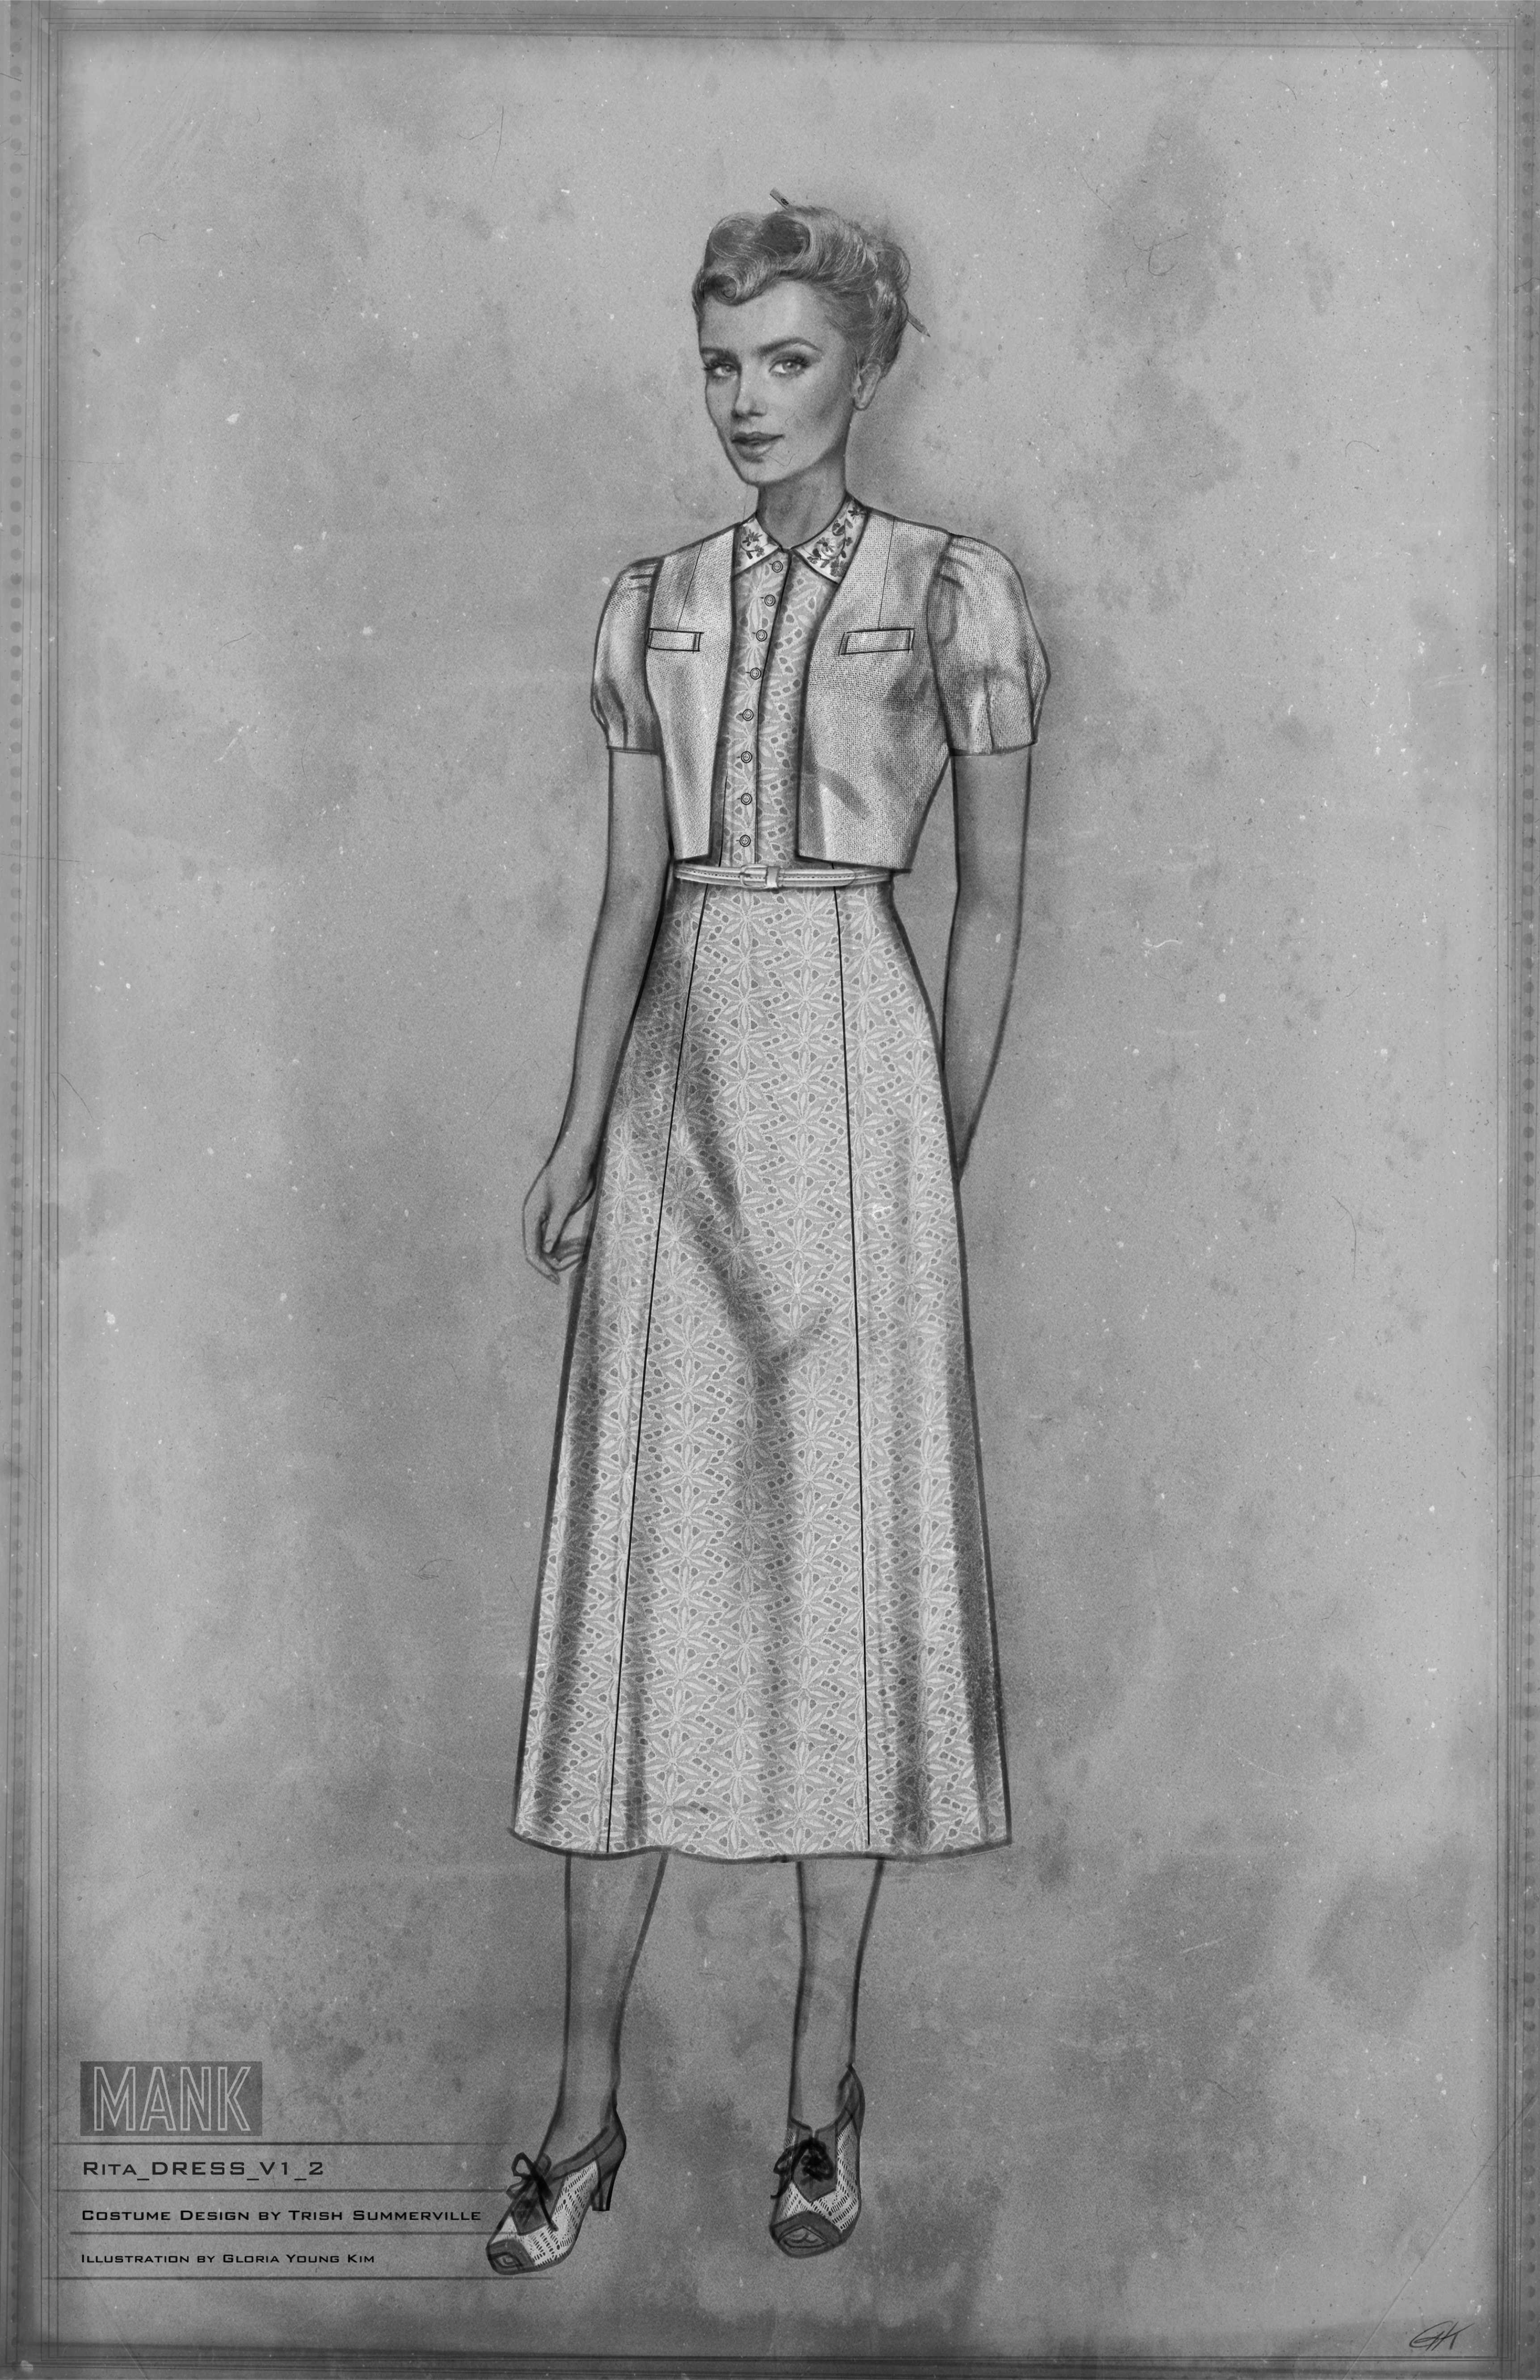 Costume sketch of Rita Alexander with her hair pulled back, wearing a belted dress, sensible heels, and short-sleeve bolero.